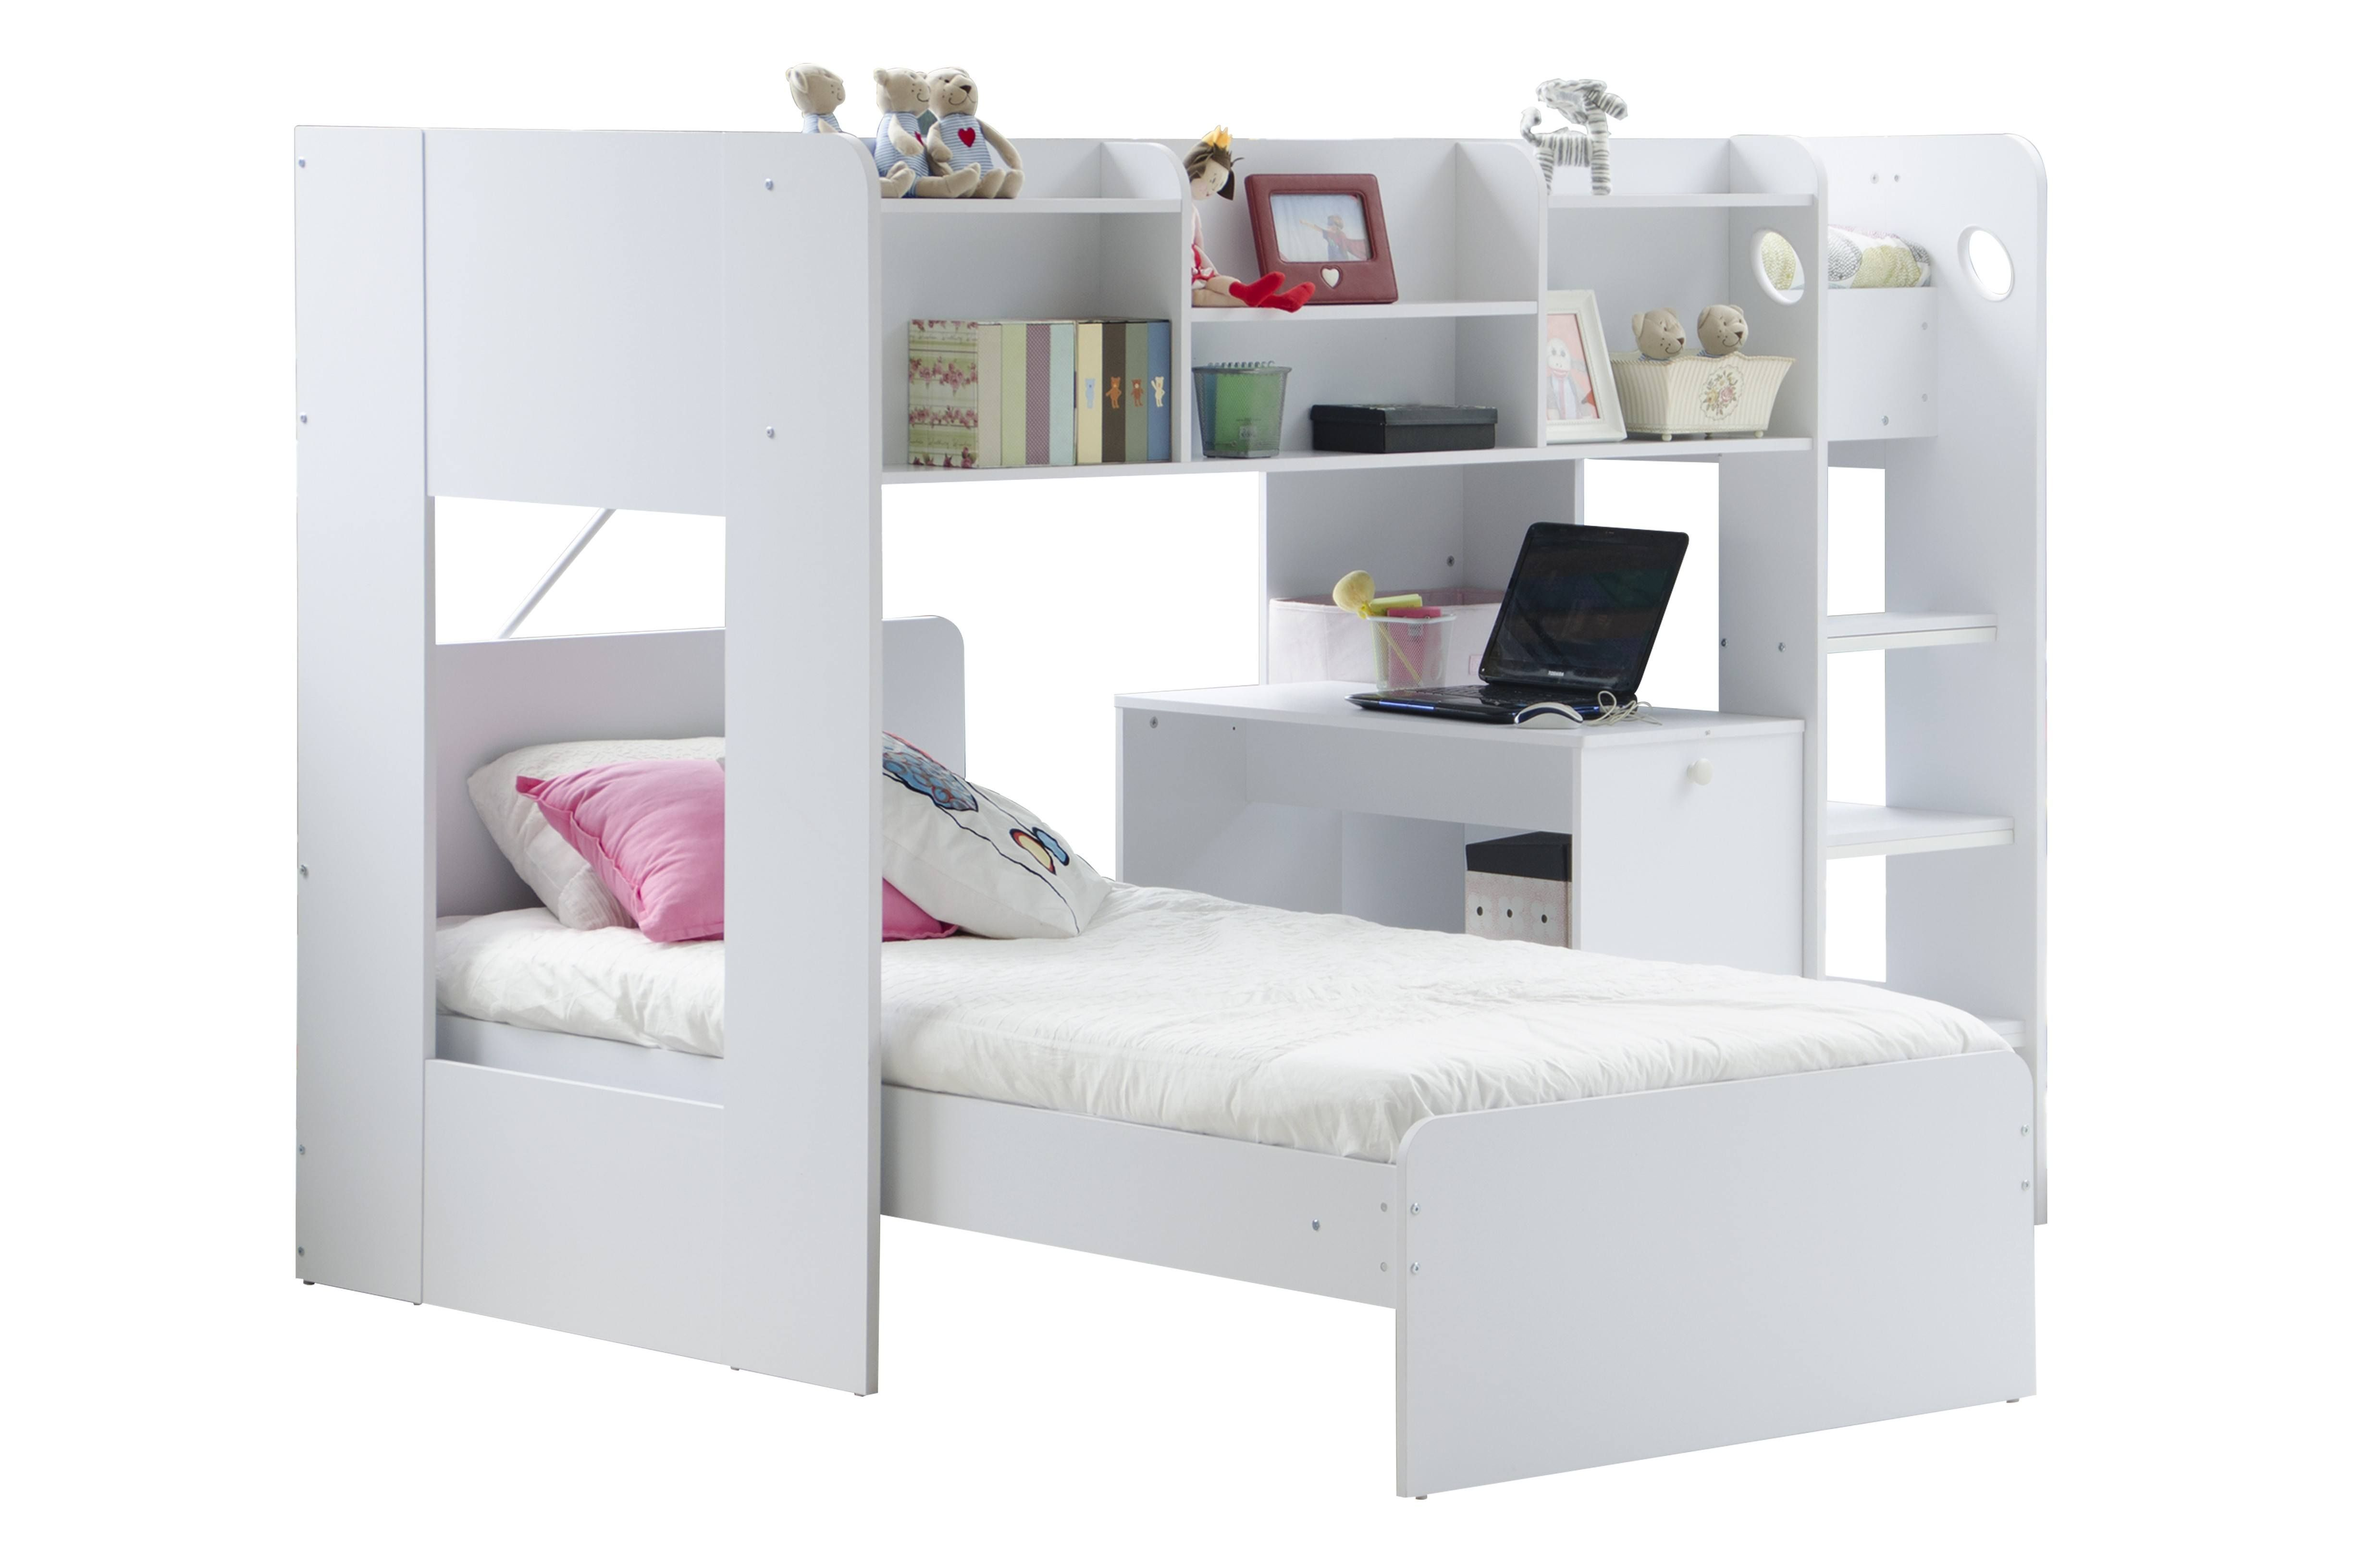 Ideas for space under loft bed   Interesting L Shaped Bunk Beds Design Ideas Youull Love  Bunk